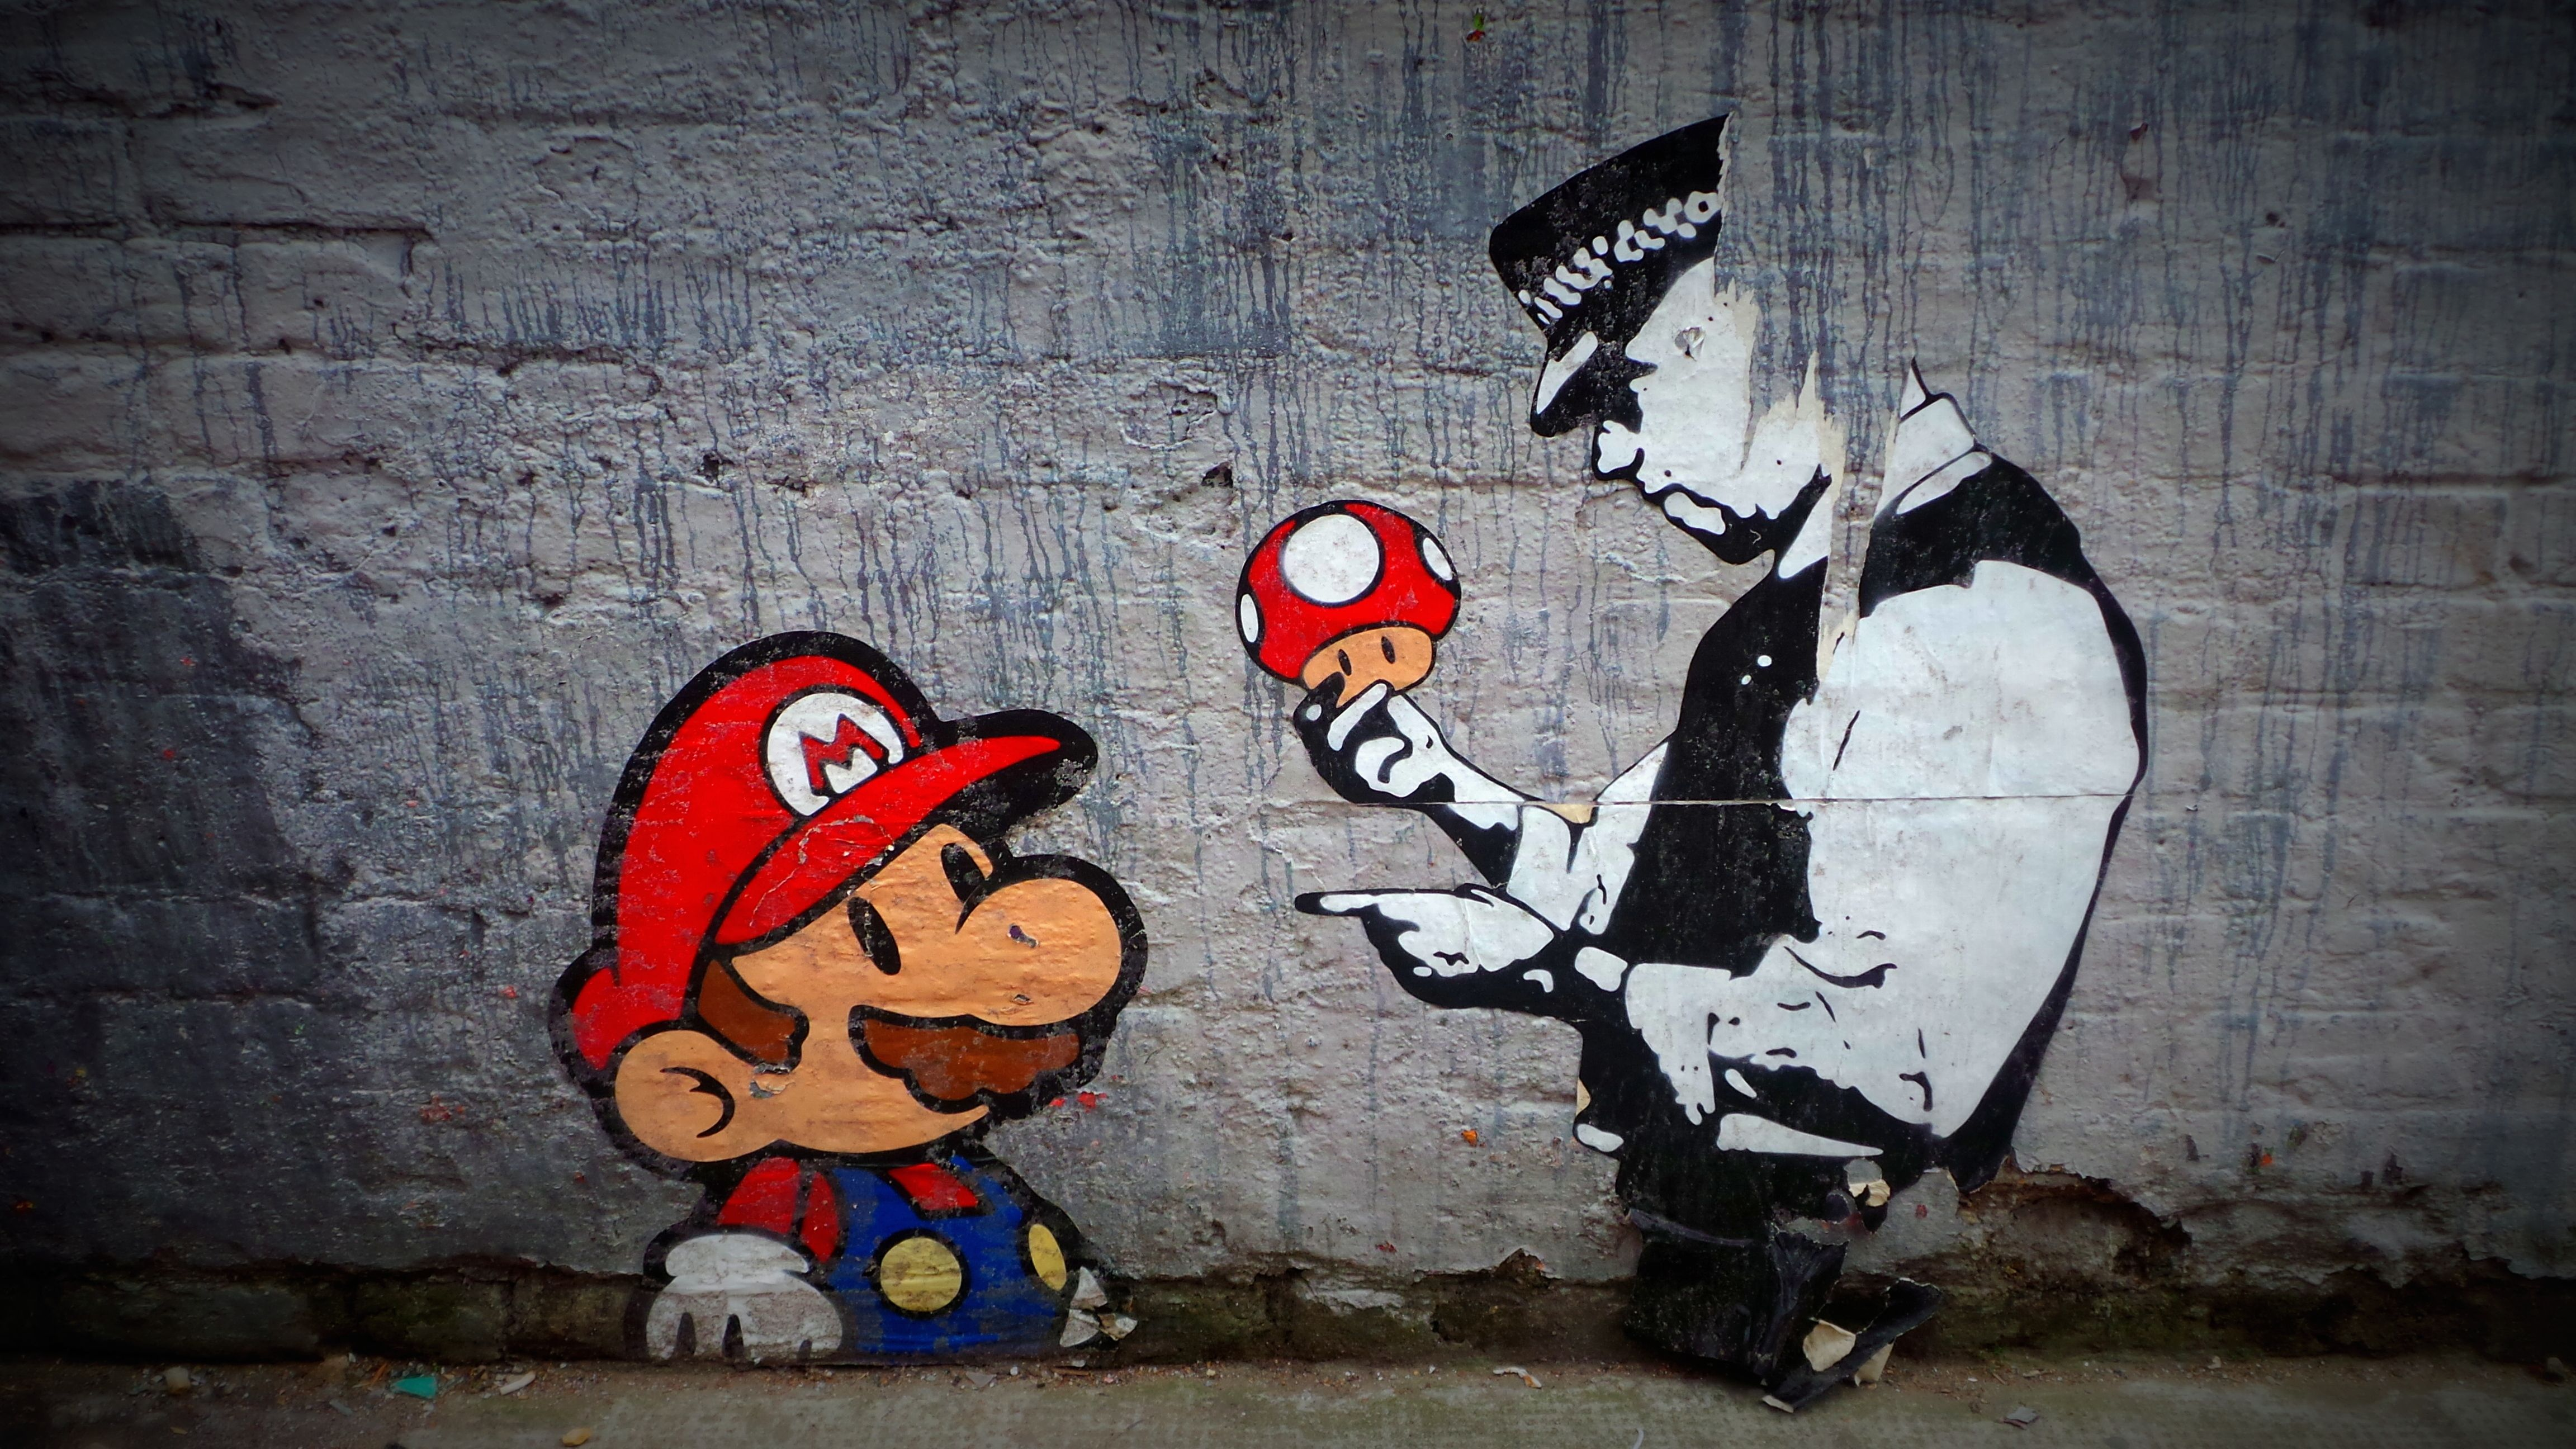 Graffiti art with meaning - Find This Pin And More On Street Art Graffiti